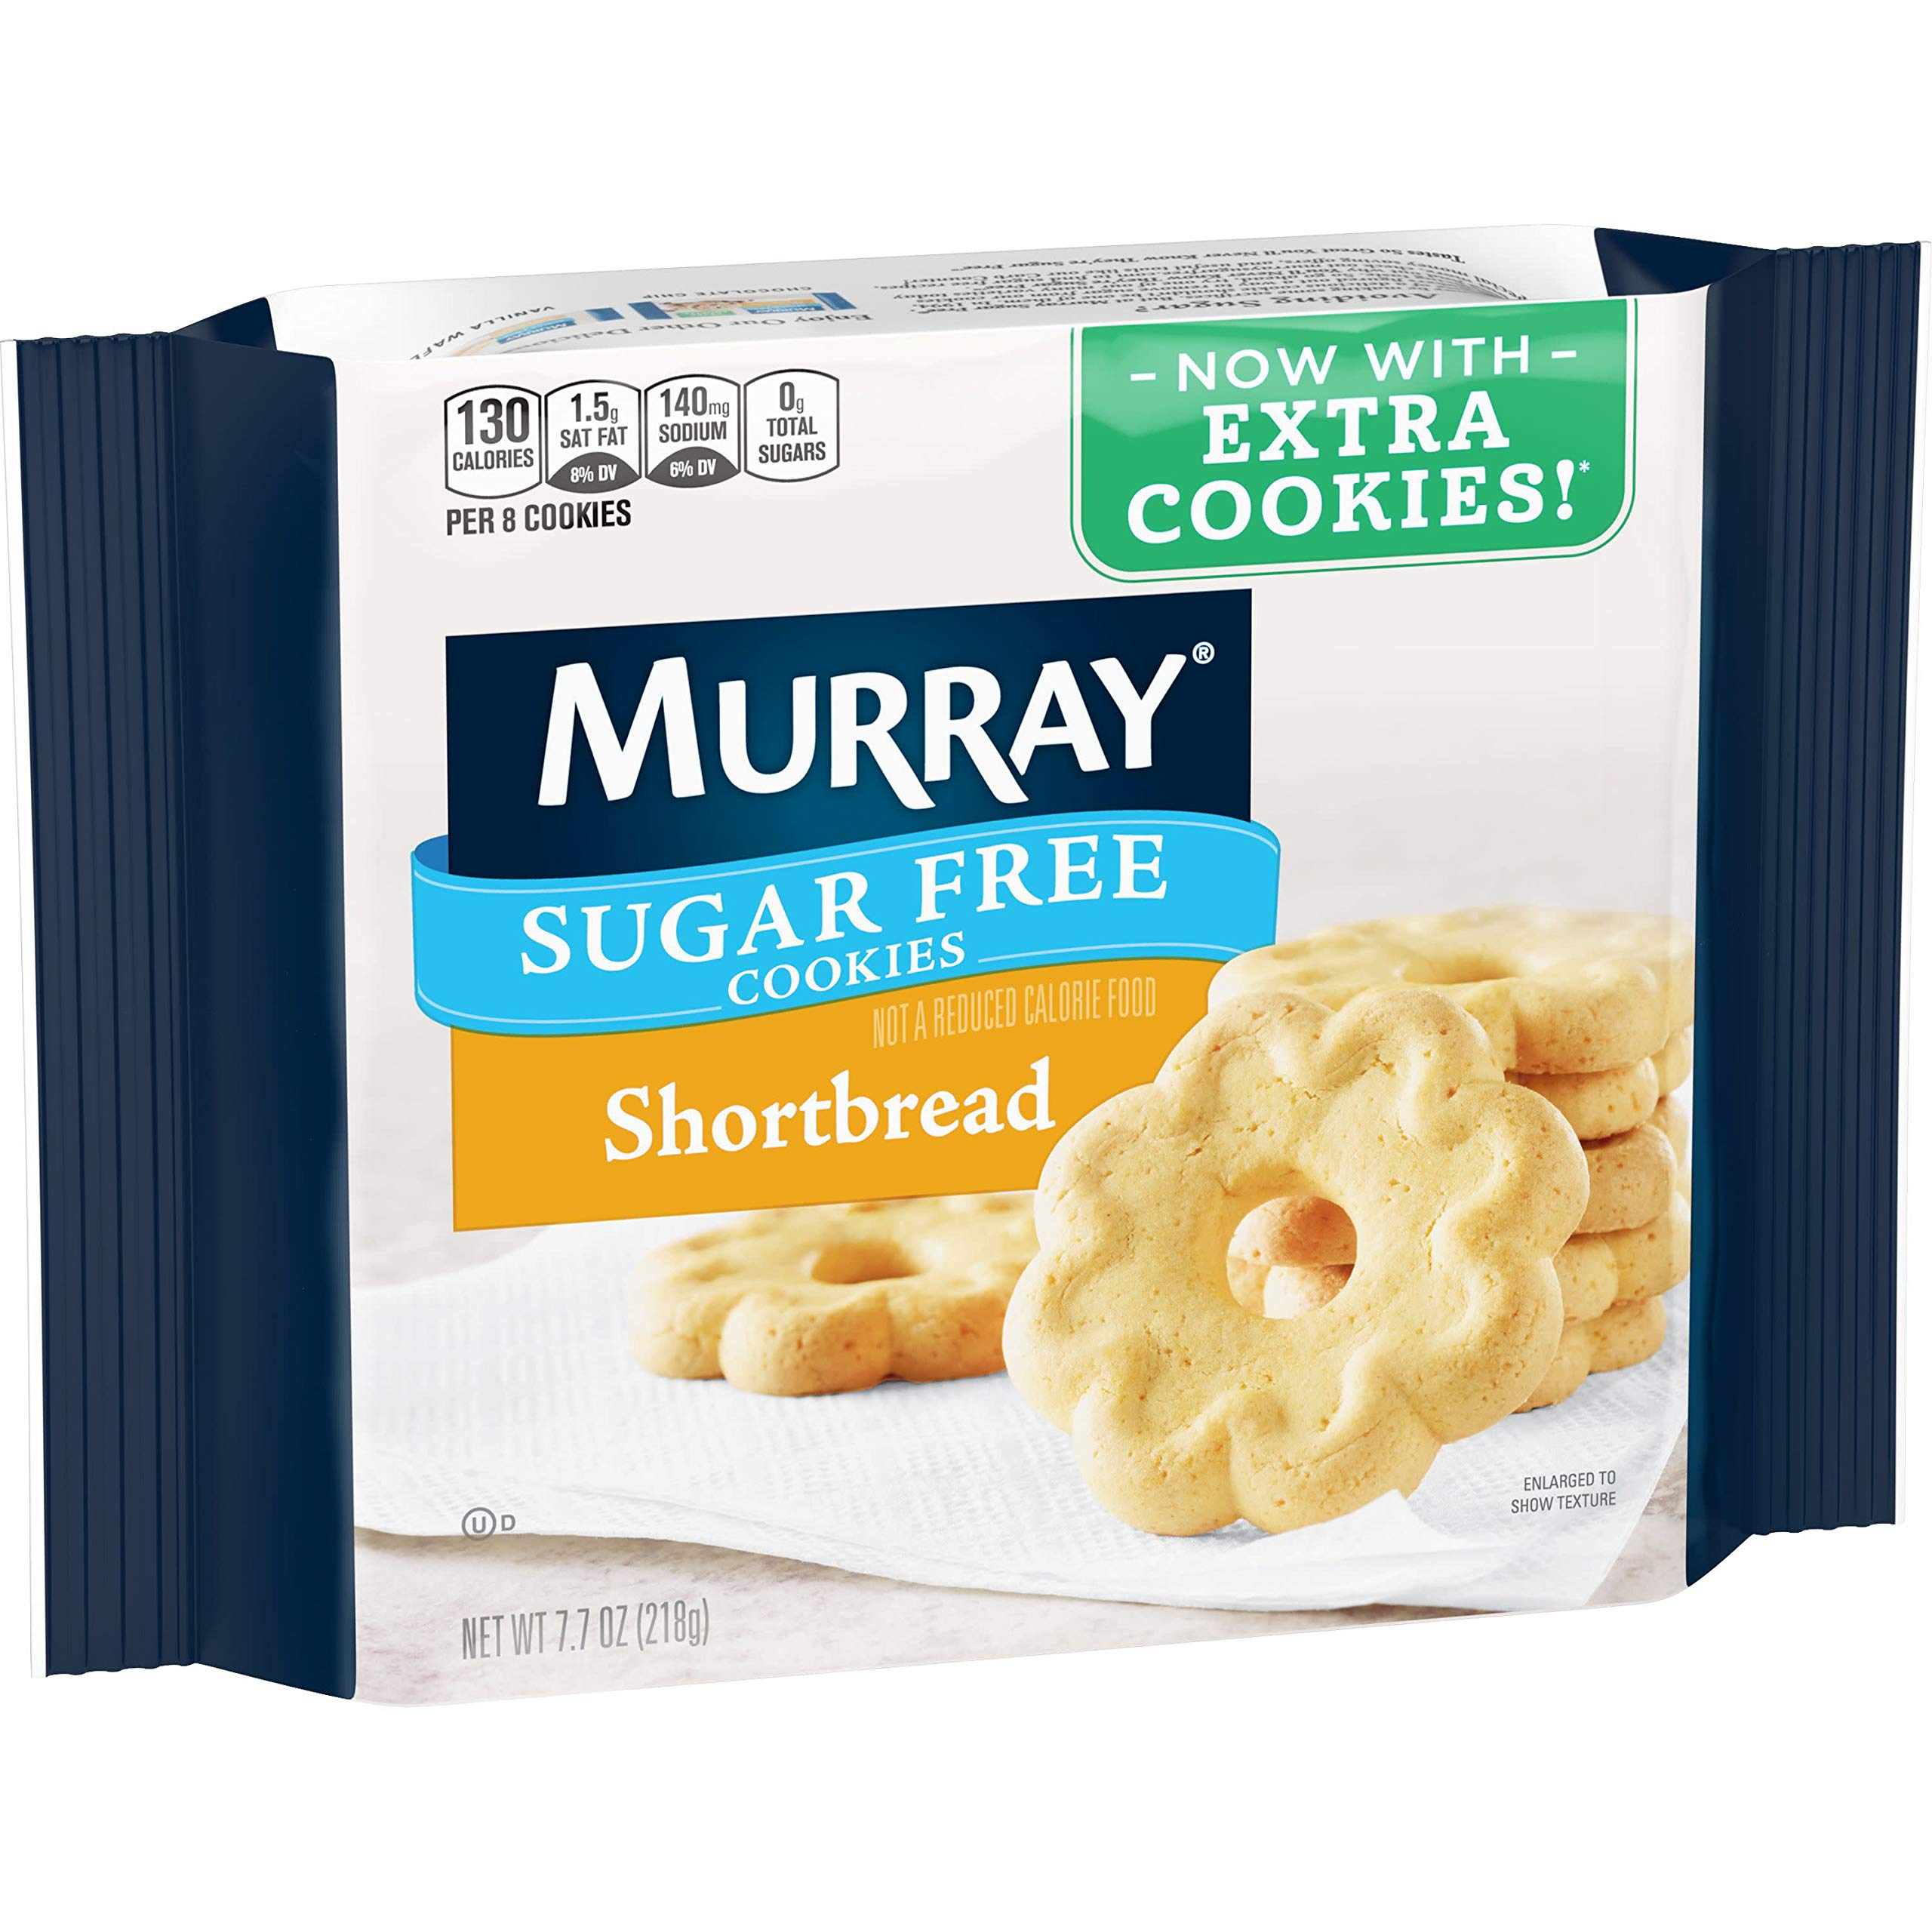 Murray Sugar Free Cookies, Shortbread, 7.7 oz Tray(Pack of 12) by Murray (Image #1)